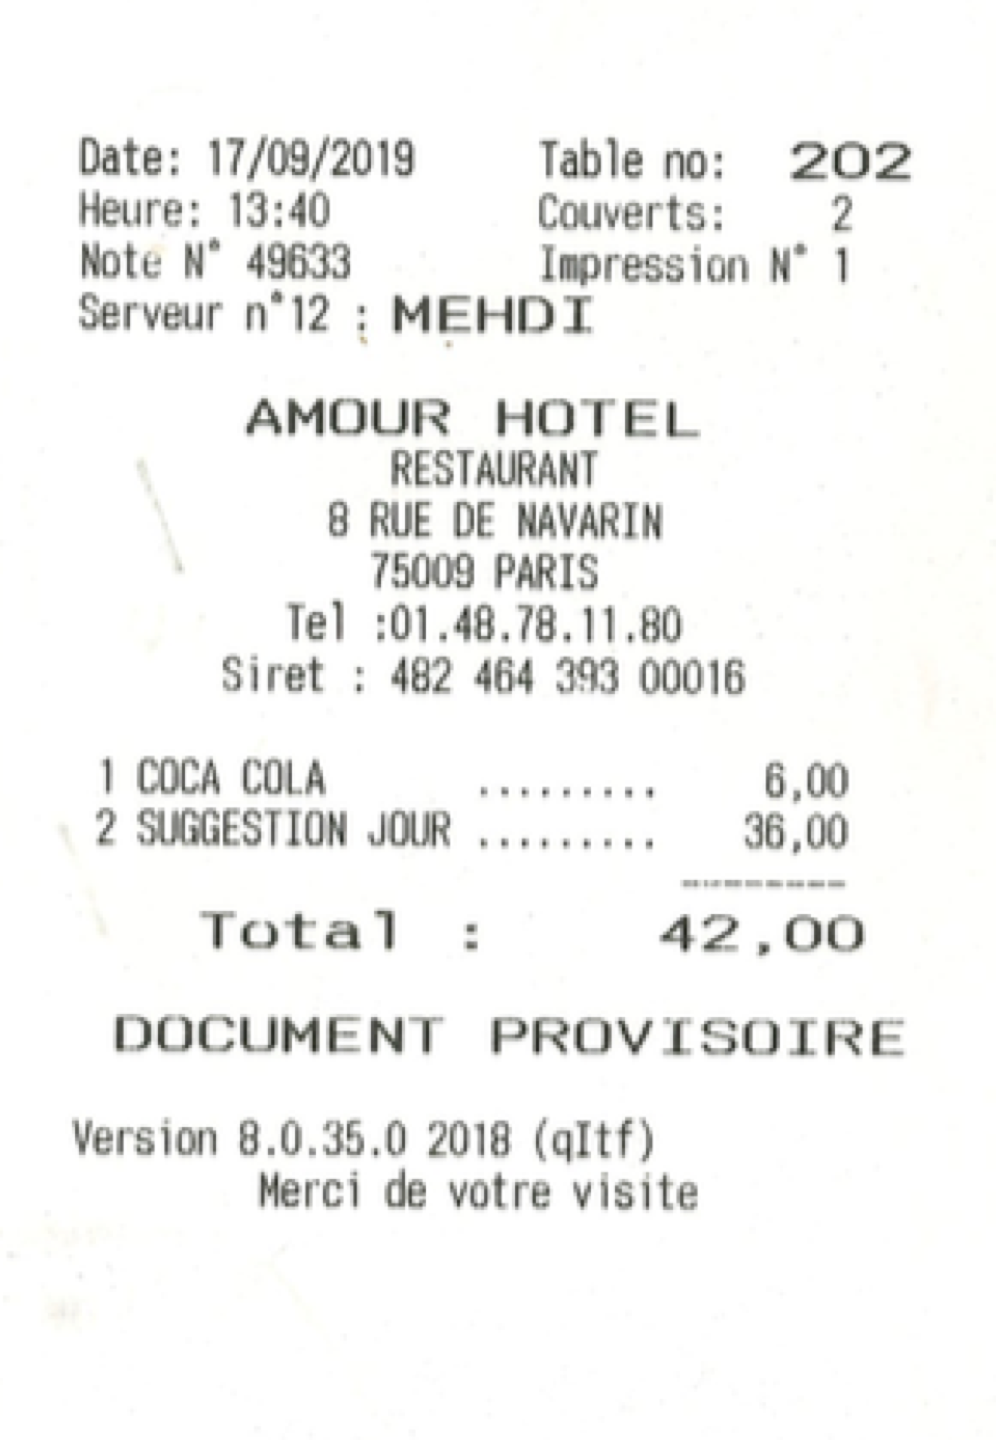 14_49_02_349_75009_Amour_Hotel.png